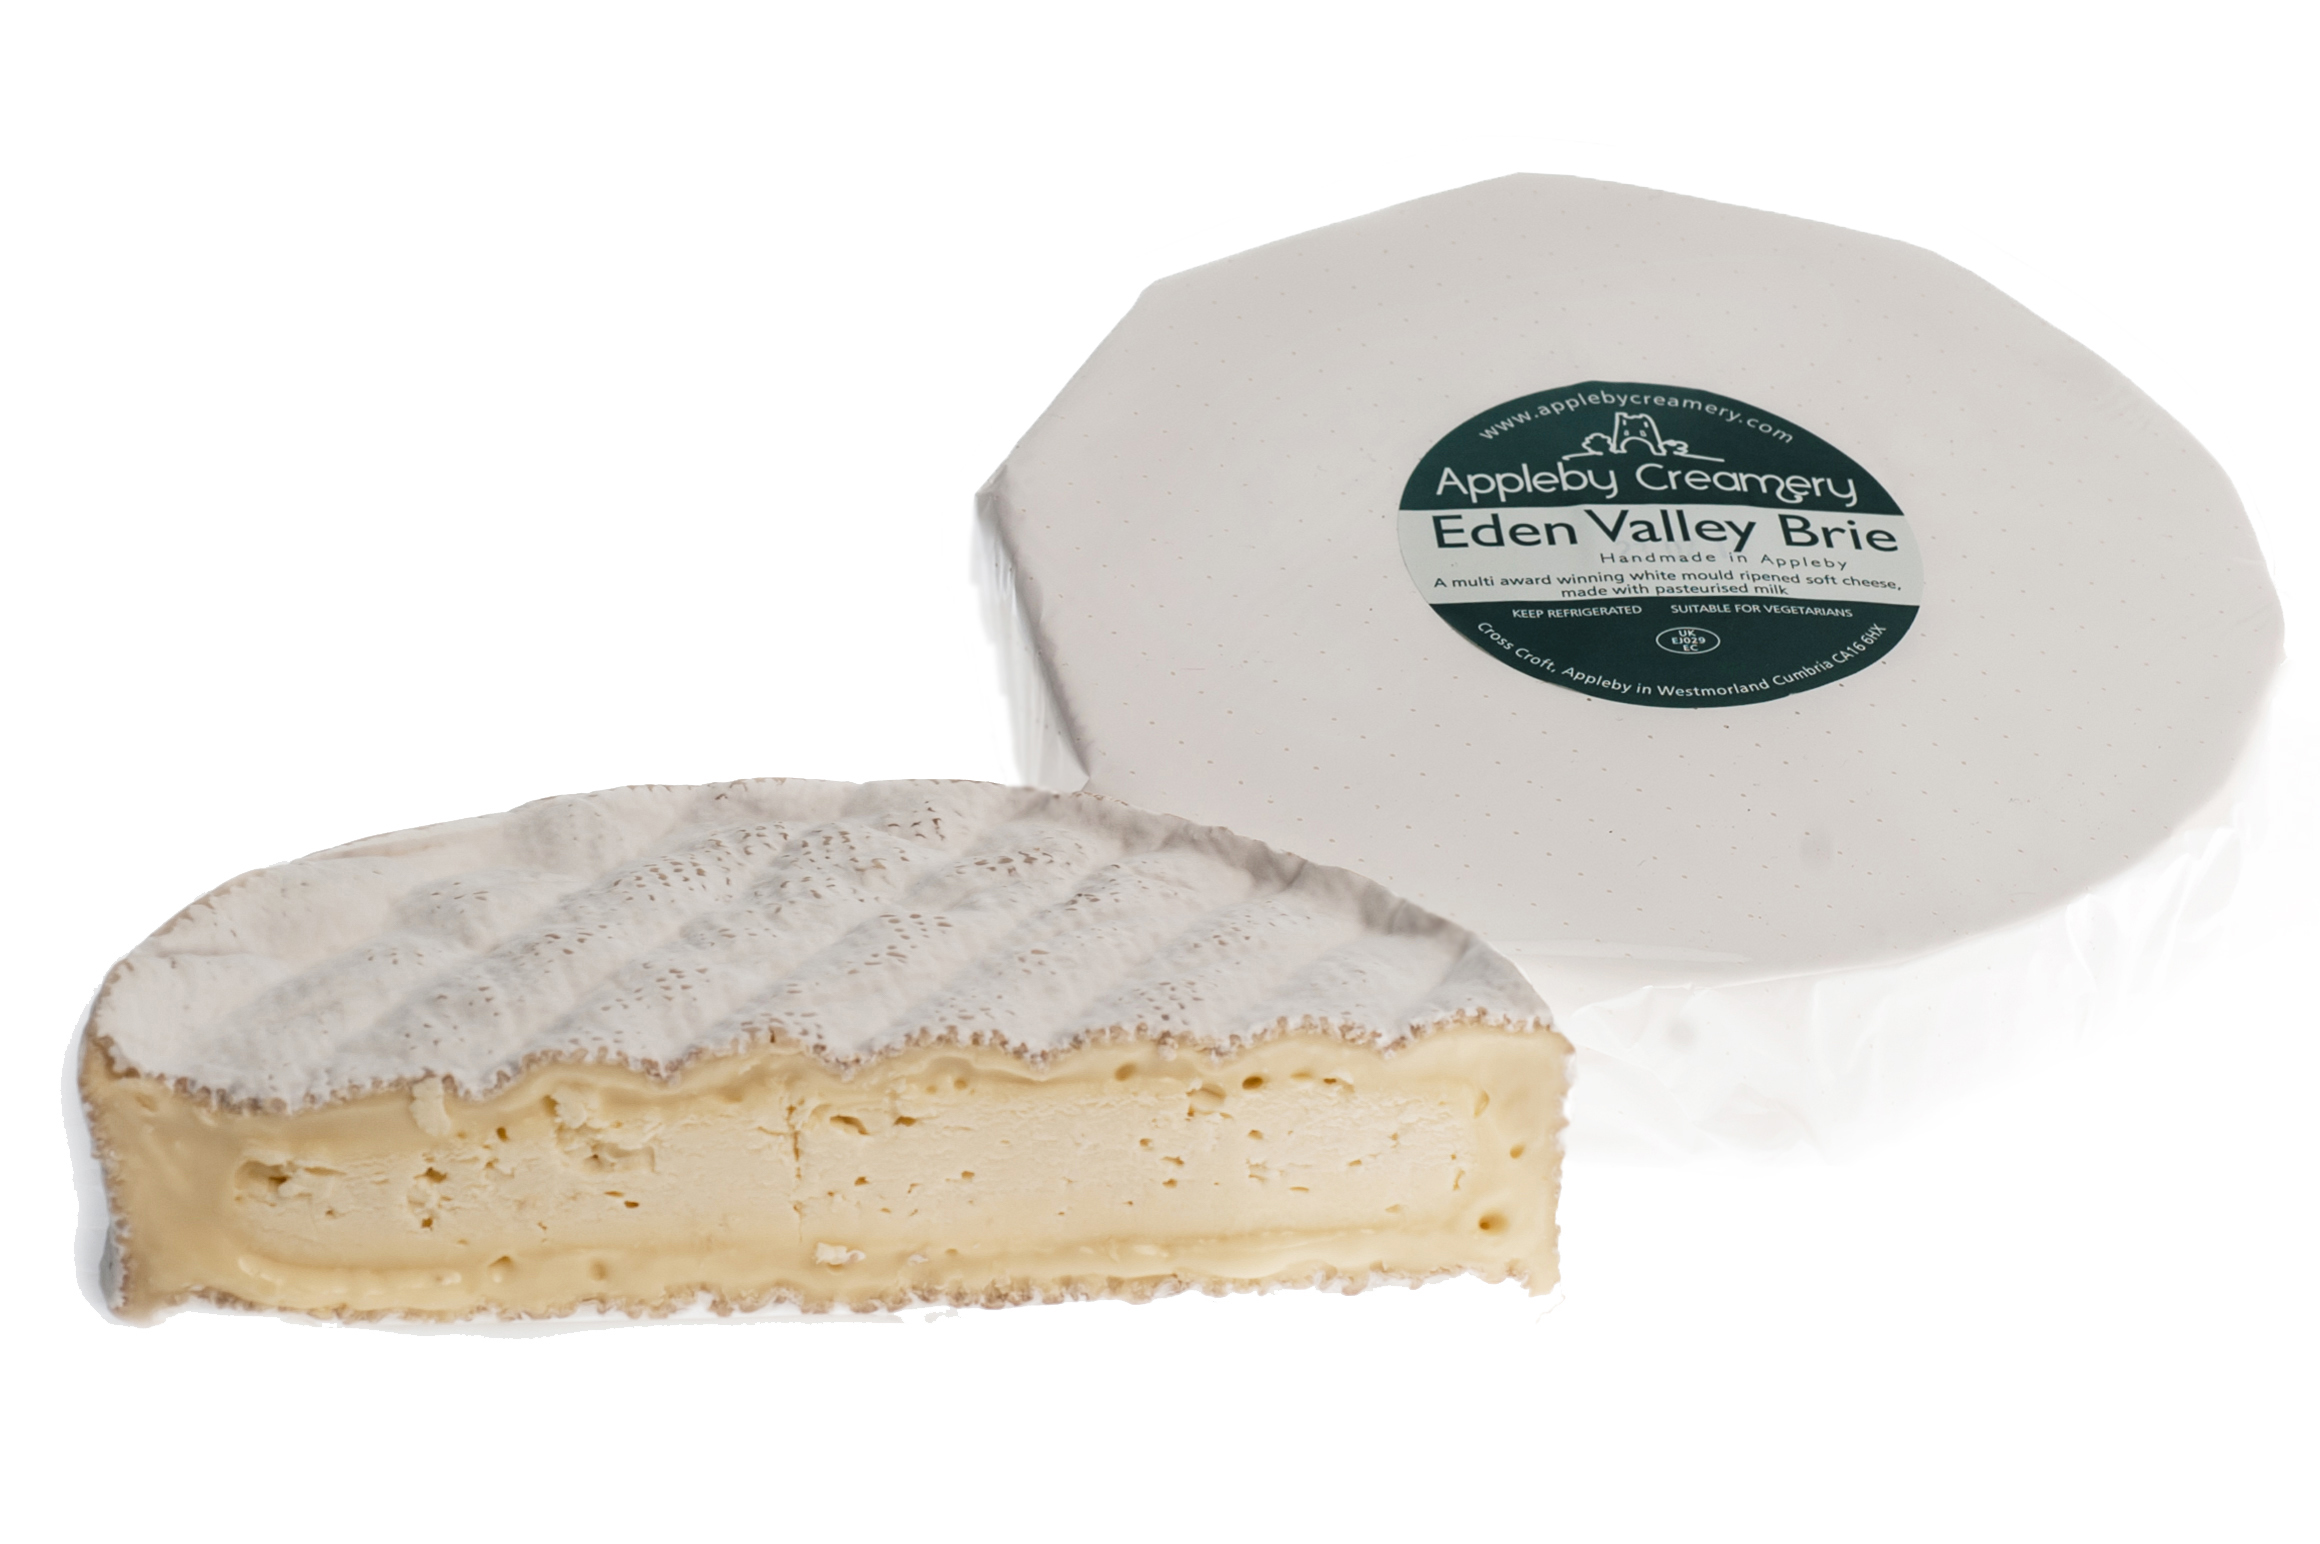 Eden Valley Brie